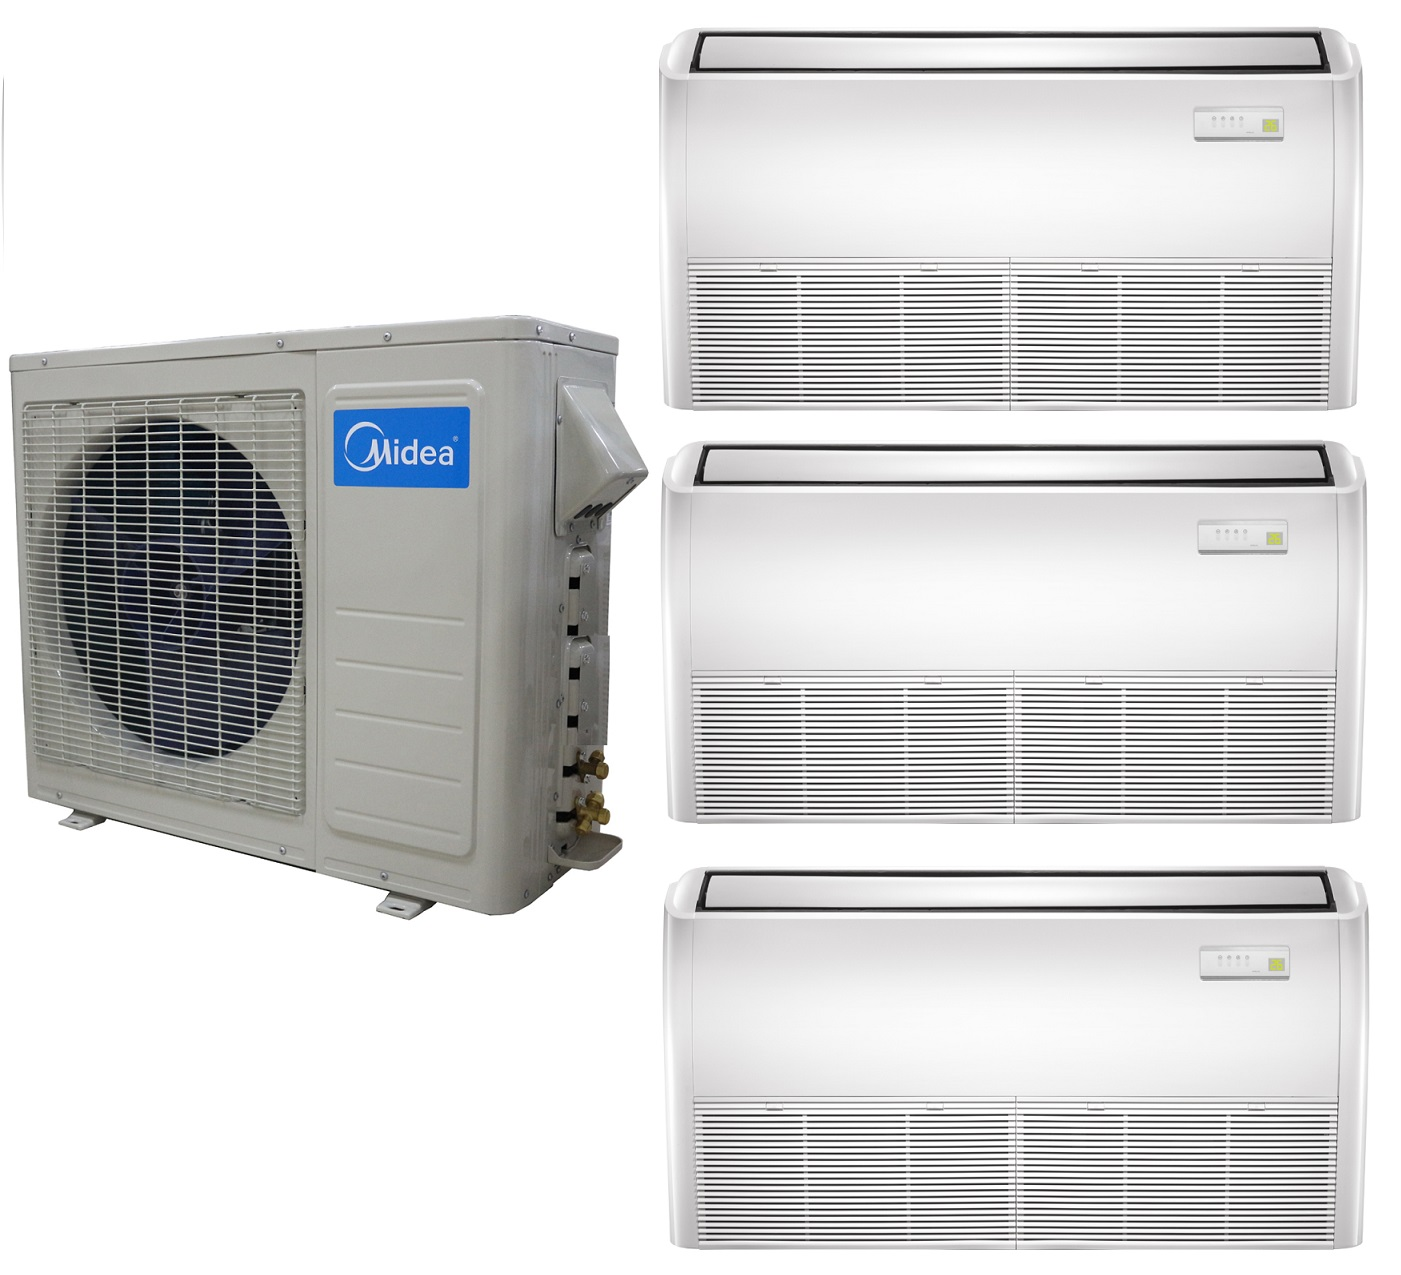 #165EB5 Midea 21 SEER 3 Zone Universal Mount Mini Split Heat Pump  Highest Rated 14346 Top Rated Mini Split Air Conditioners img with 1401x1275 px on helpvideos.info - Air Conditioners, Air Coolers and more